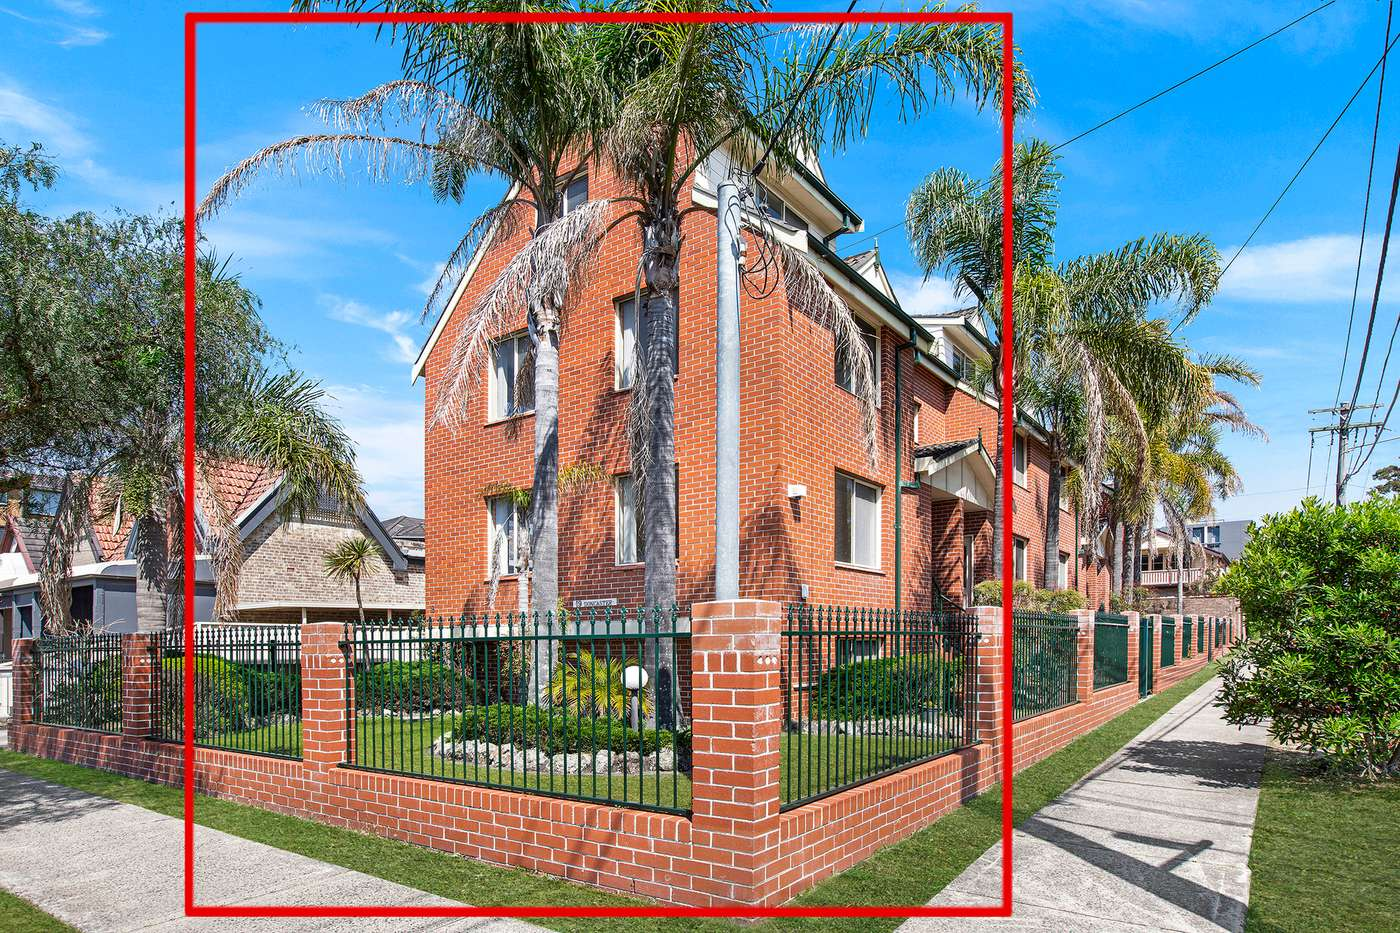 Main view of Homely house listing, 1/19 Doncaster Avenue, Kensington, NSW 2033